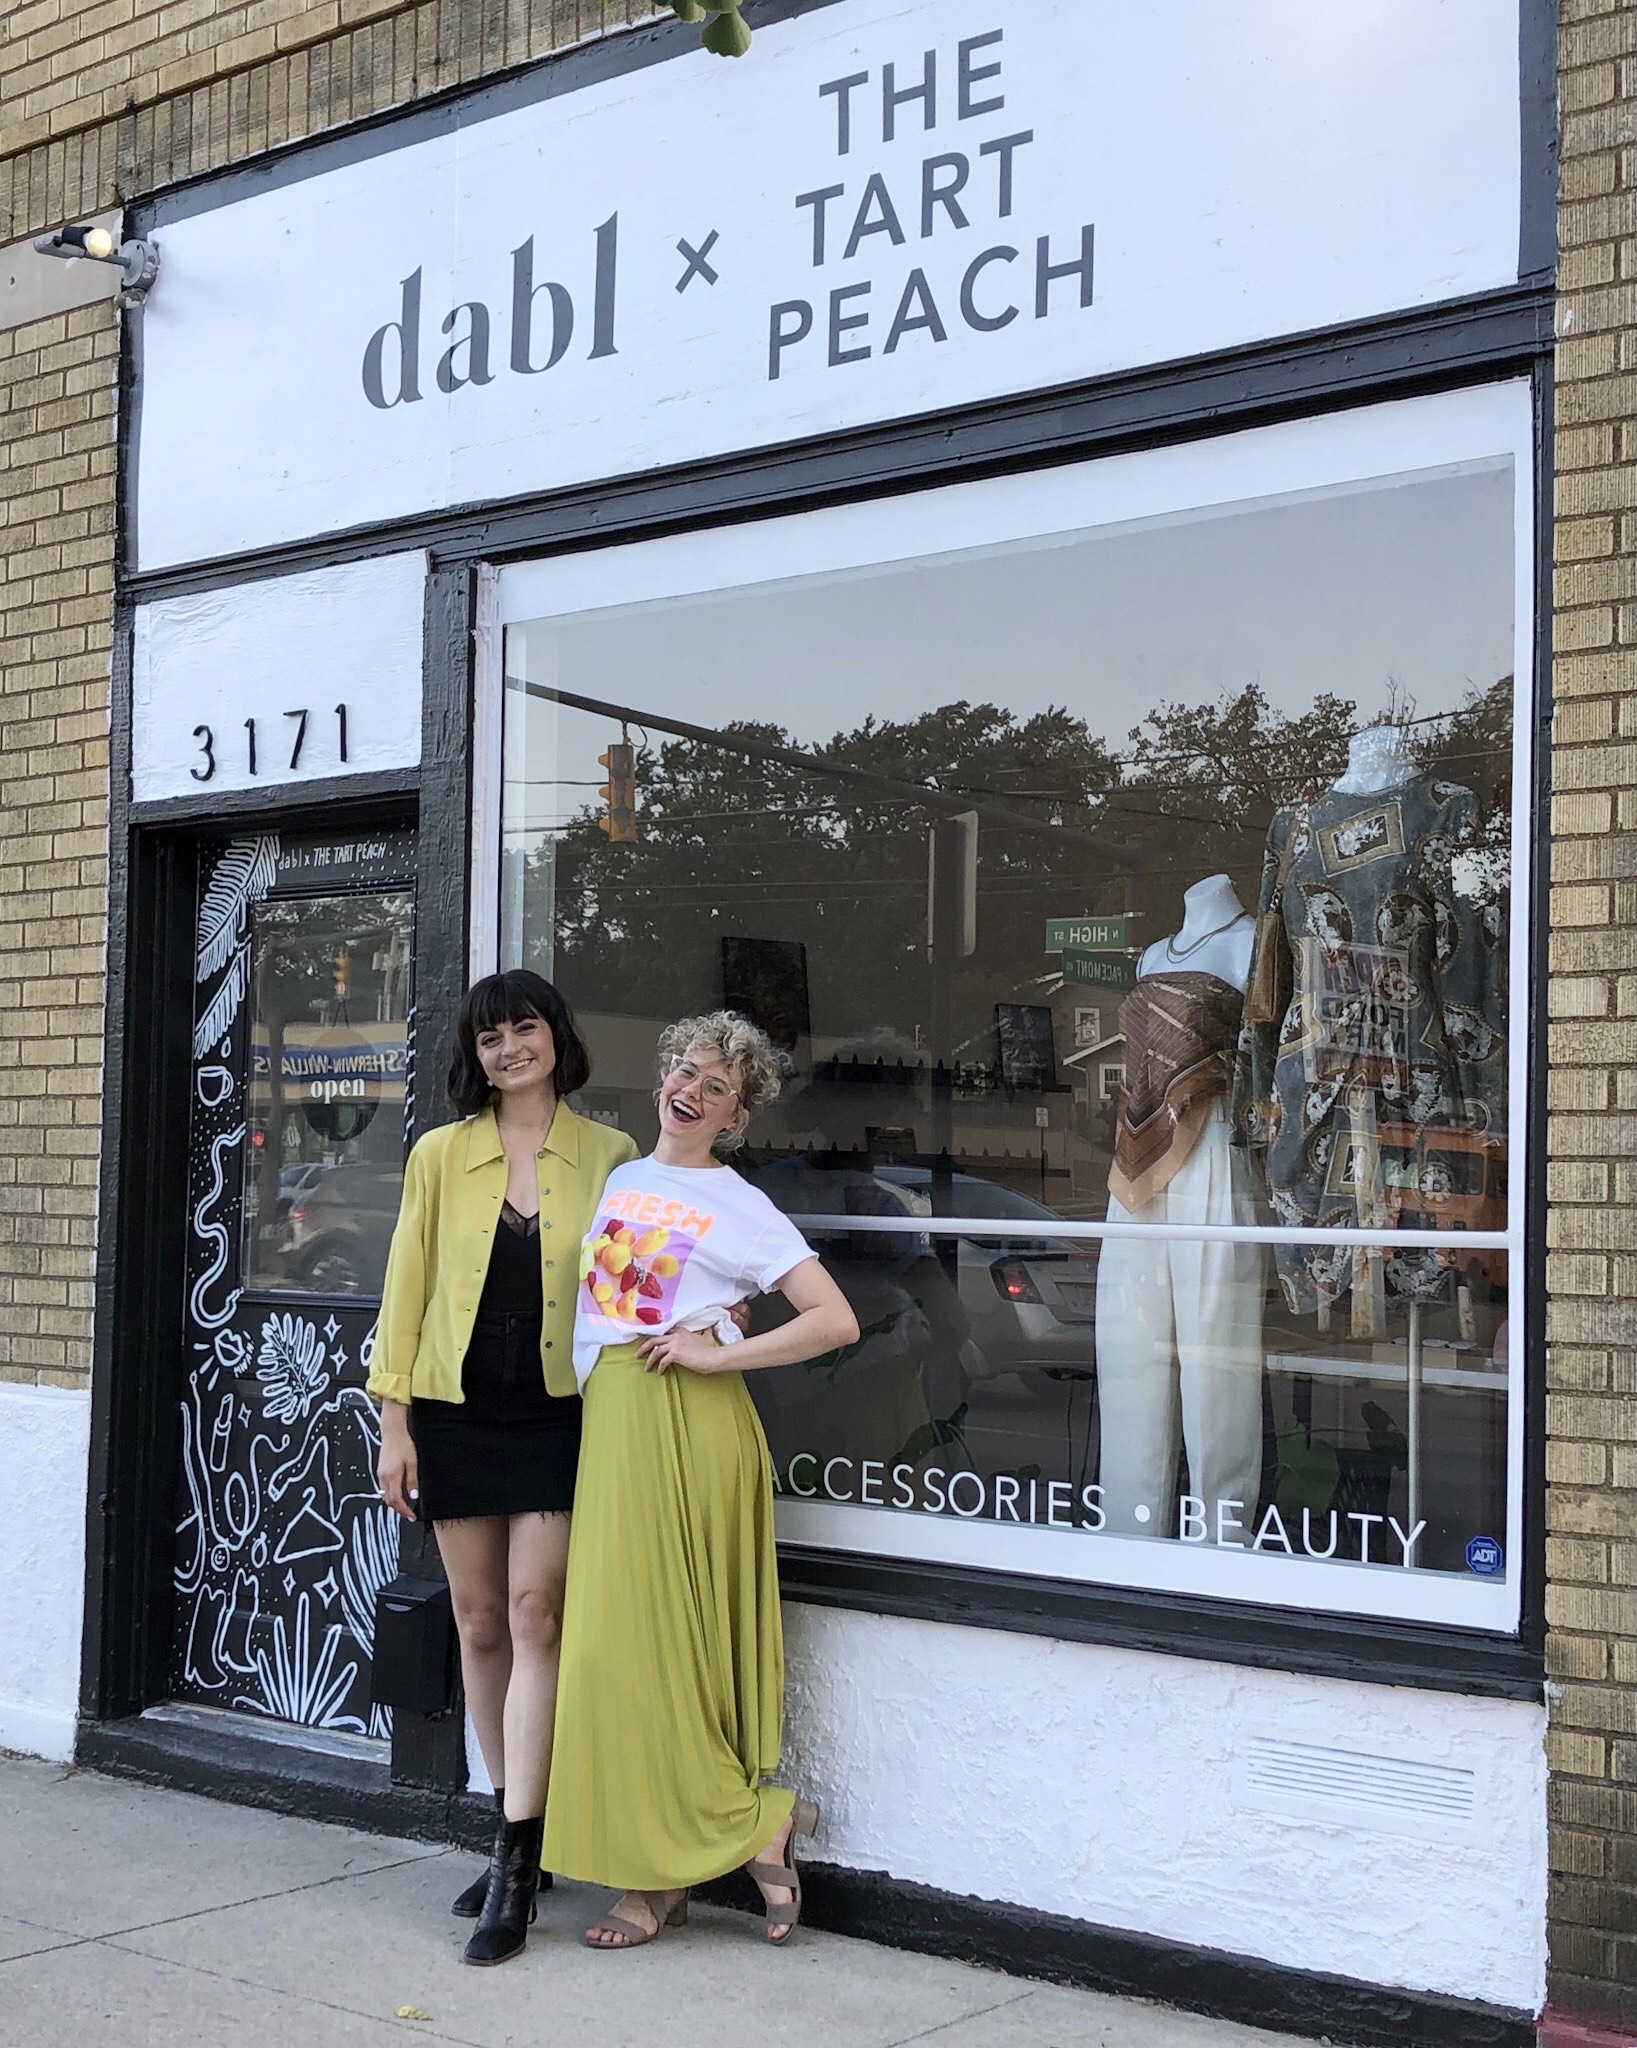 The Tart Peach: Side-hustle turned full-time business